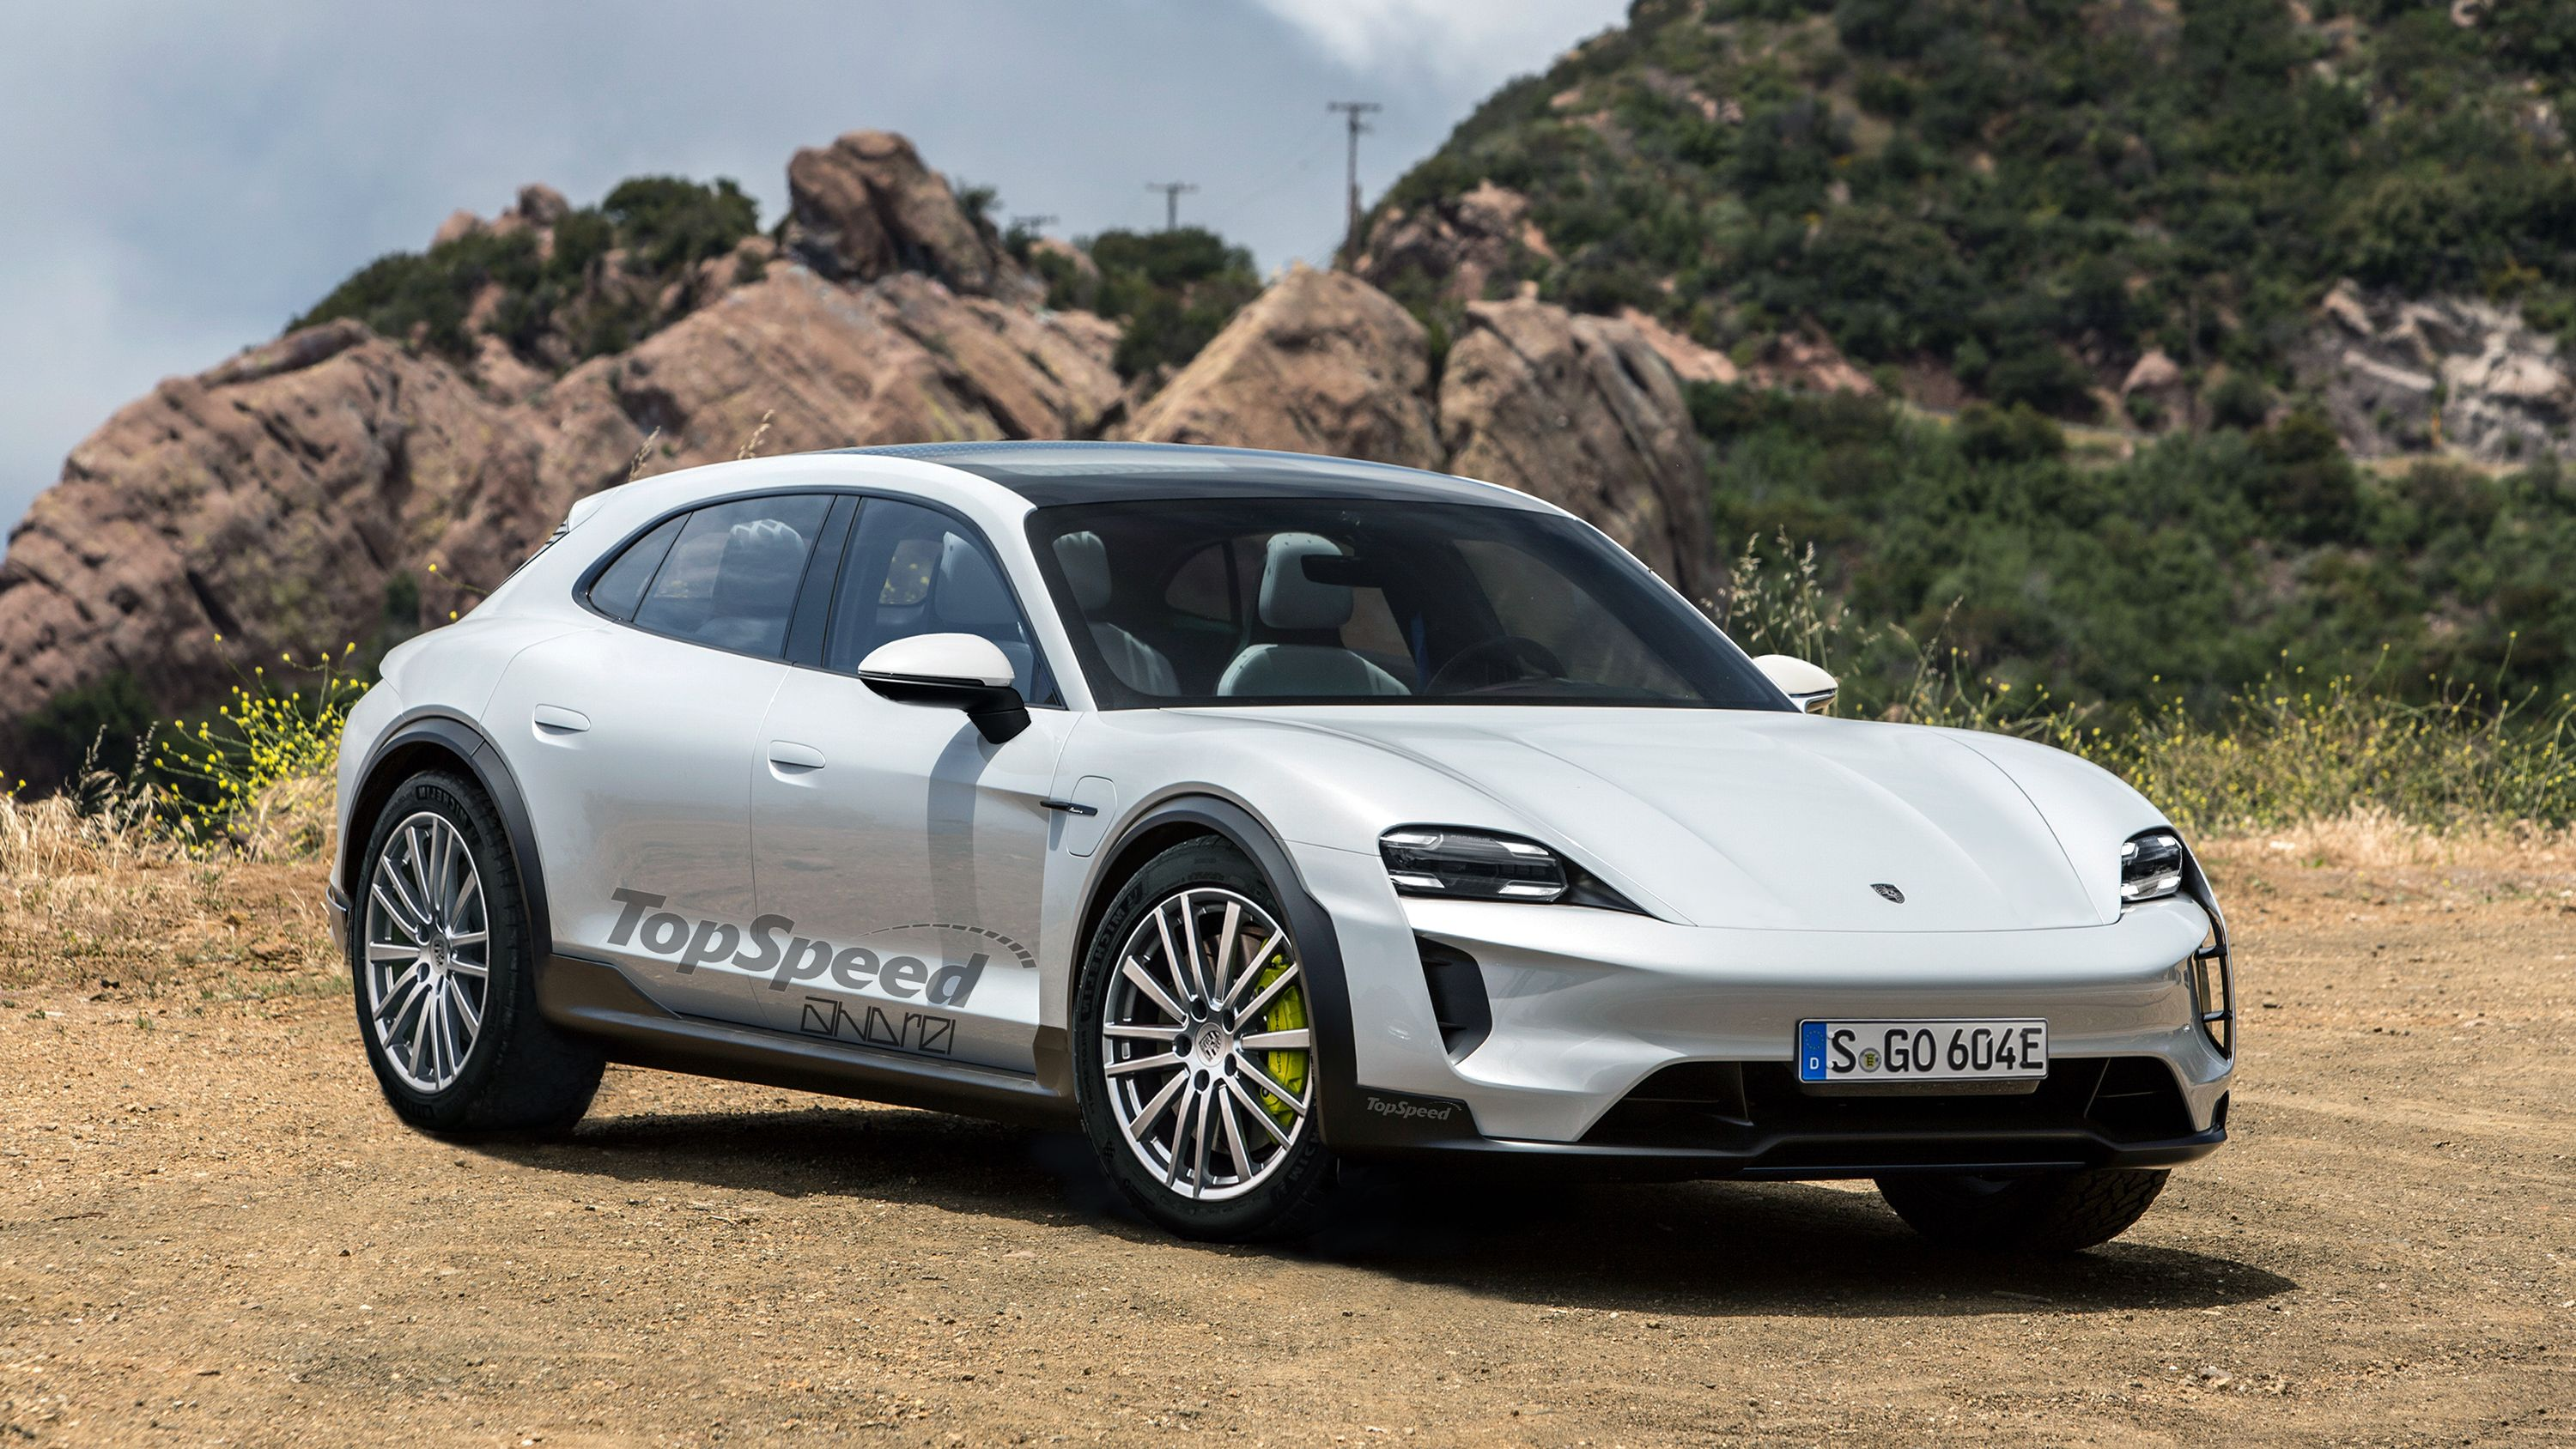 2020 Porsche Taycan Cuv Cars Pinterest Cars Porsche And